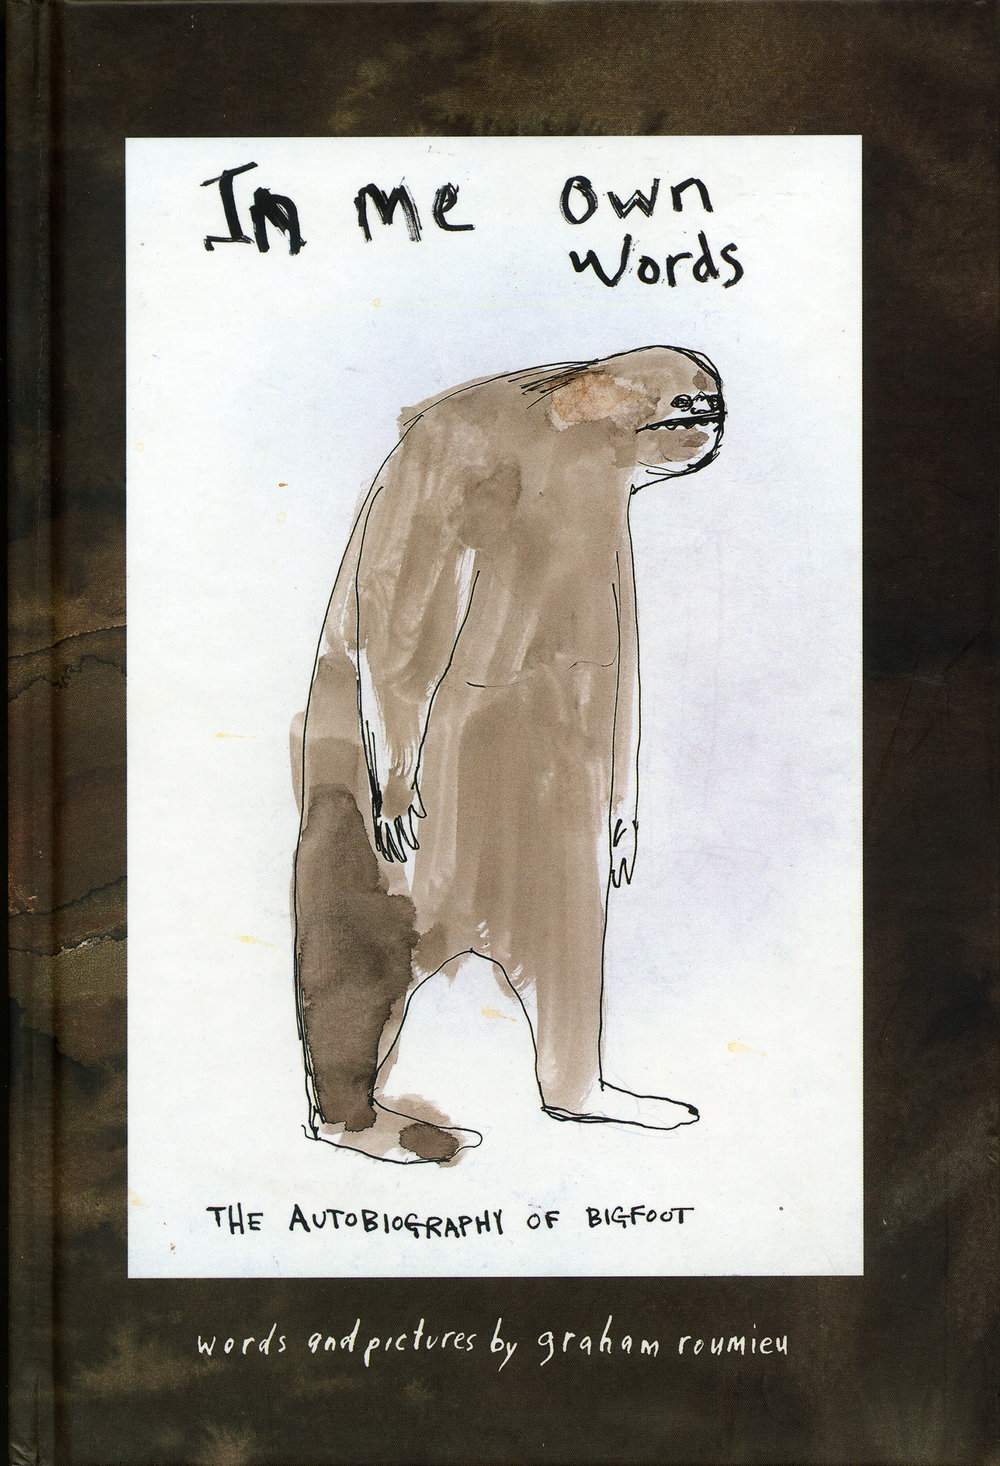 AI 20 2001 - ARTIST: Graham RoumieuTITLE: In me Own Words [3 of 3]